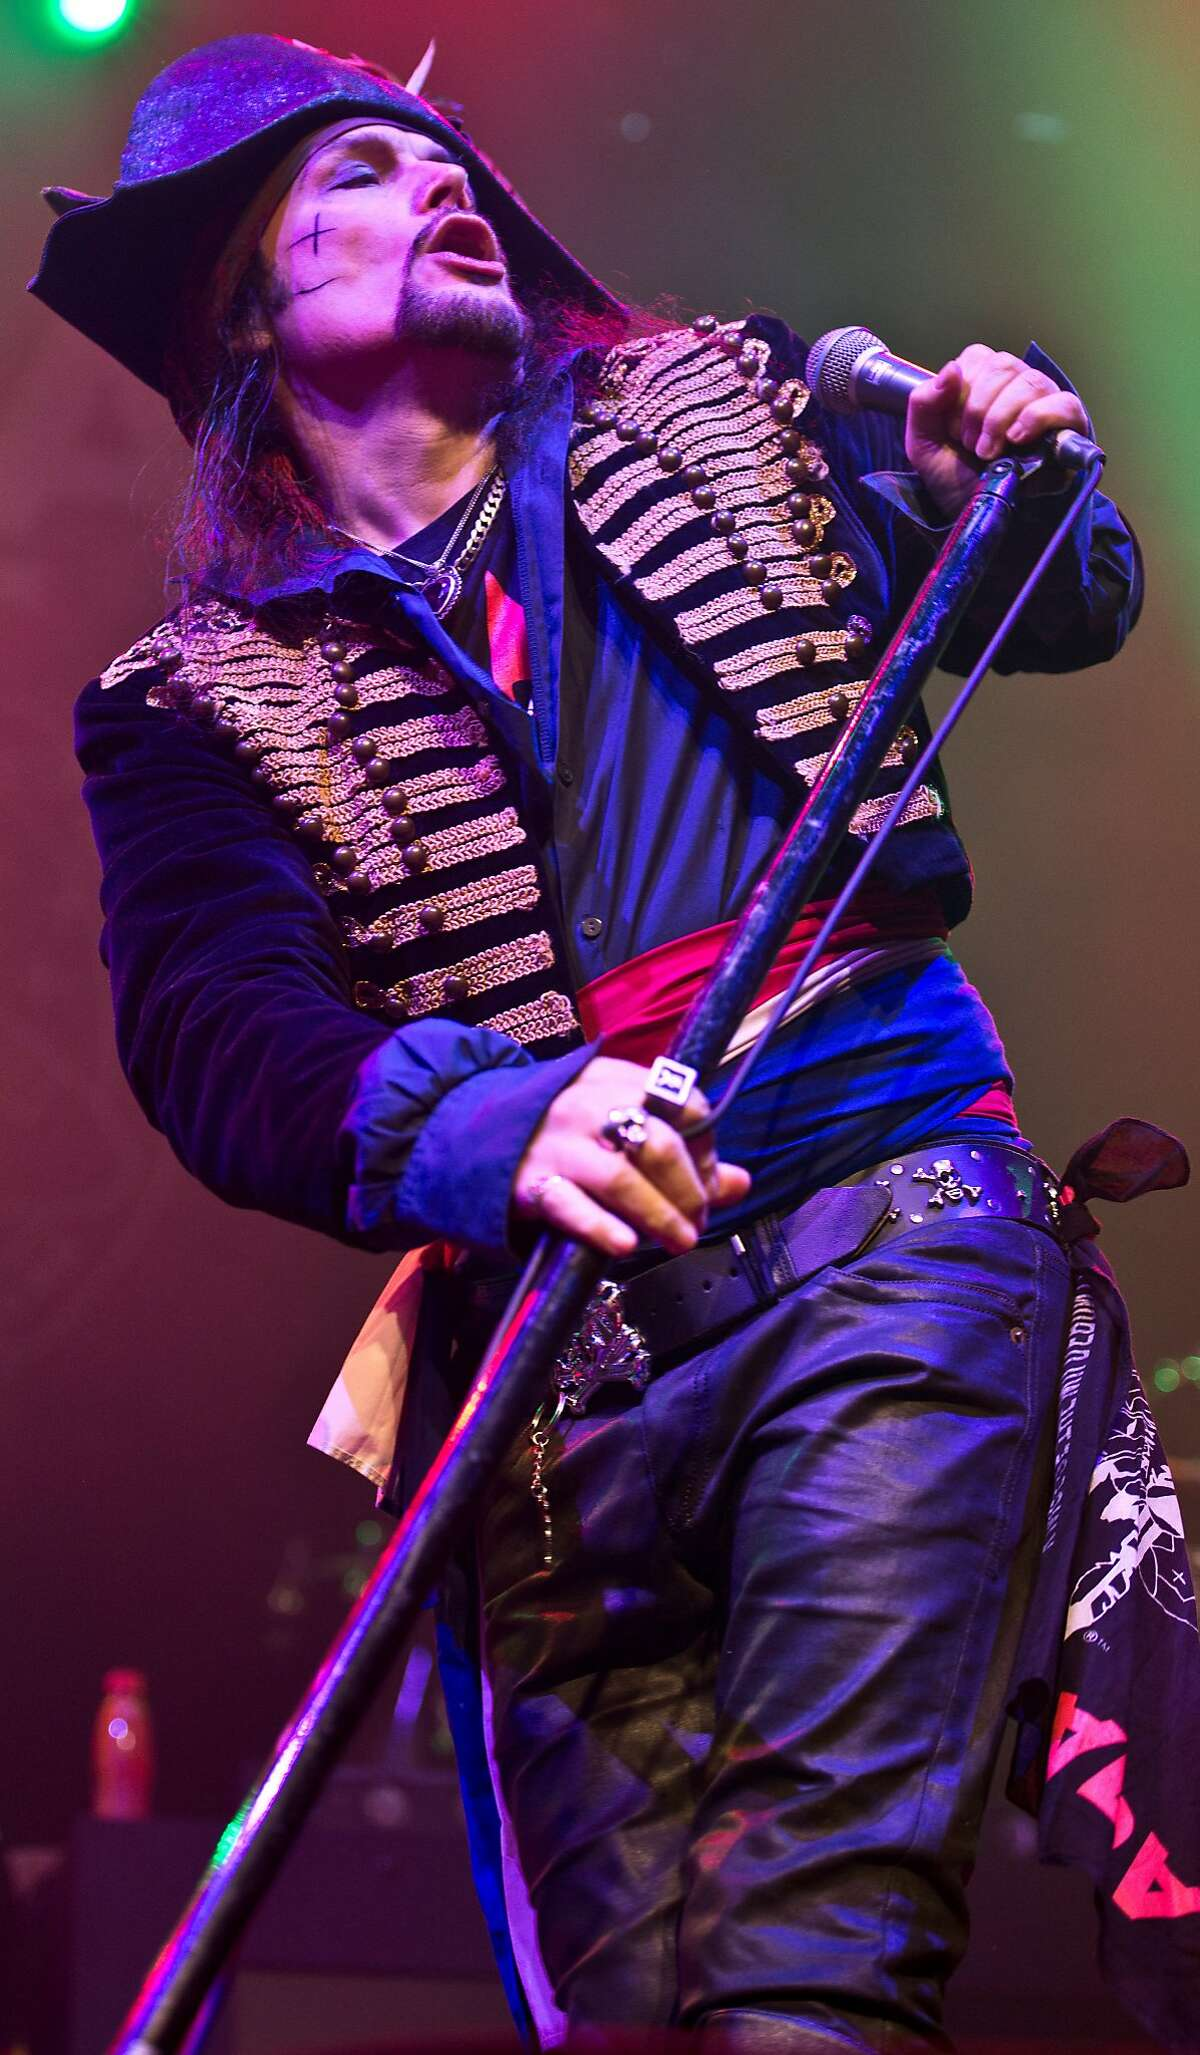 British rocker Adam Ant, shown Dec. 1, 2016 at a concert in the Roundhouse in London